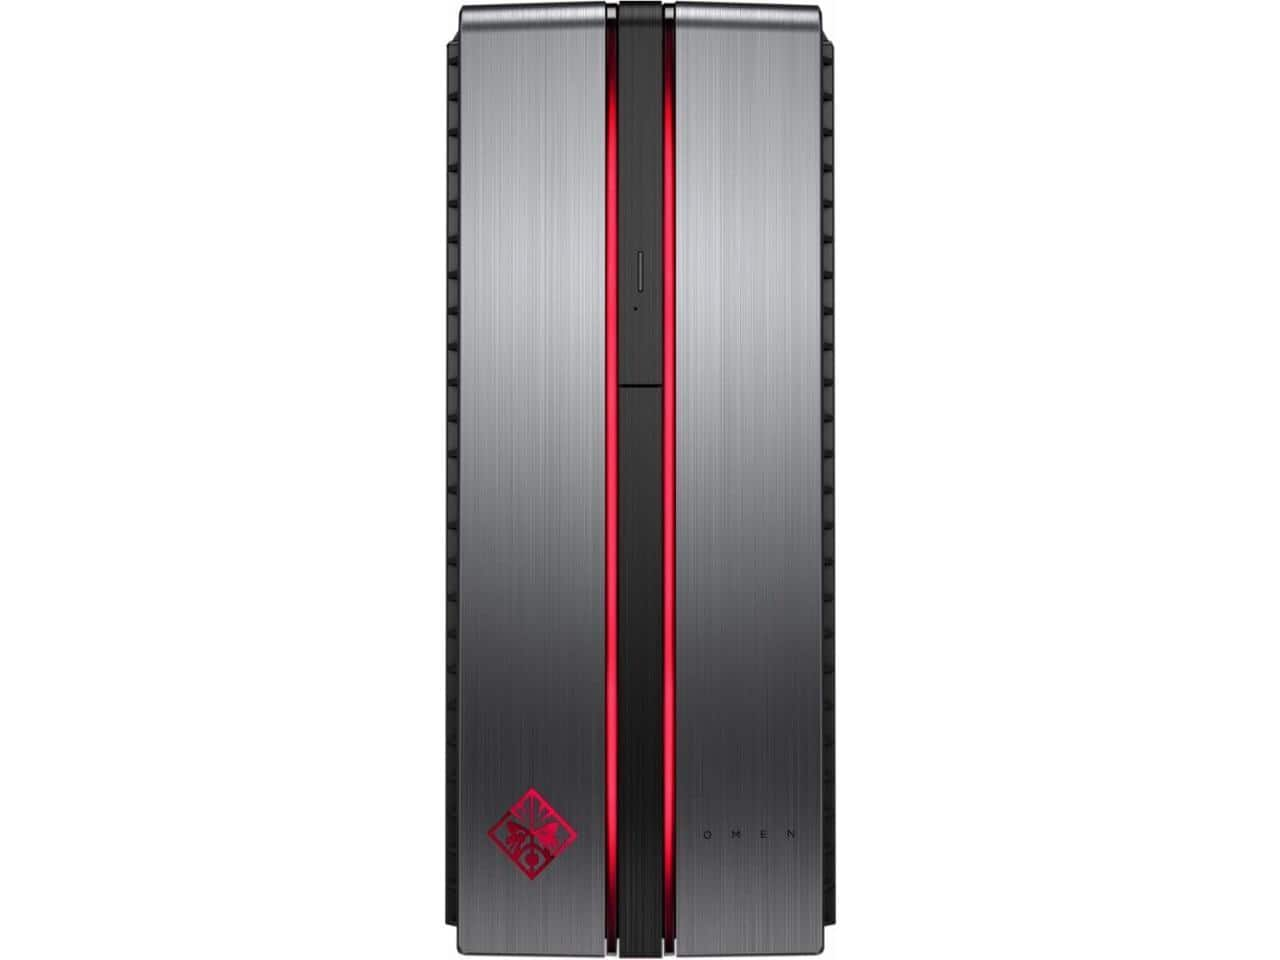 899 @ NewEgg + 50 NE GC - HP OMEN 870-244 Desktop Computer